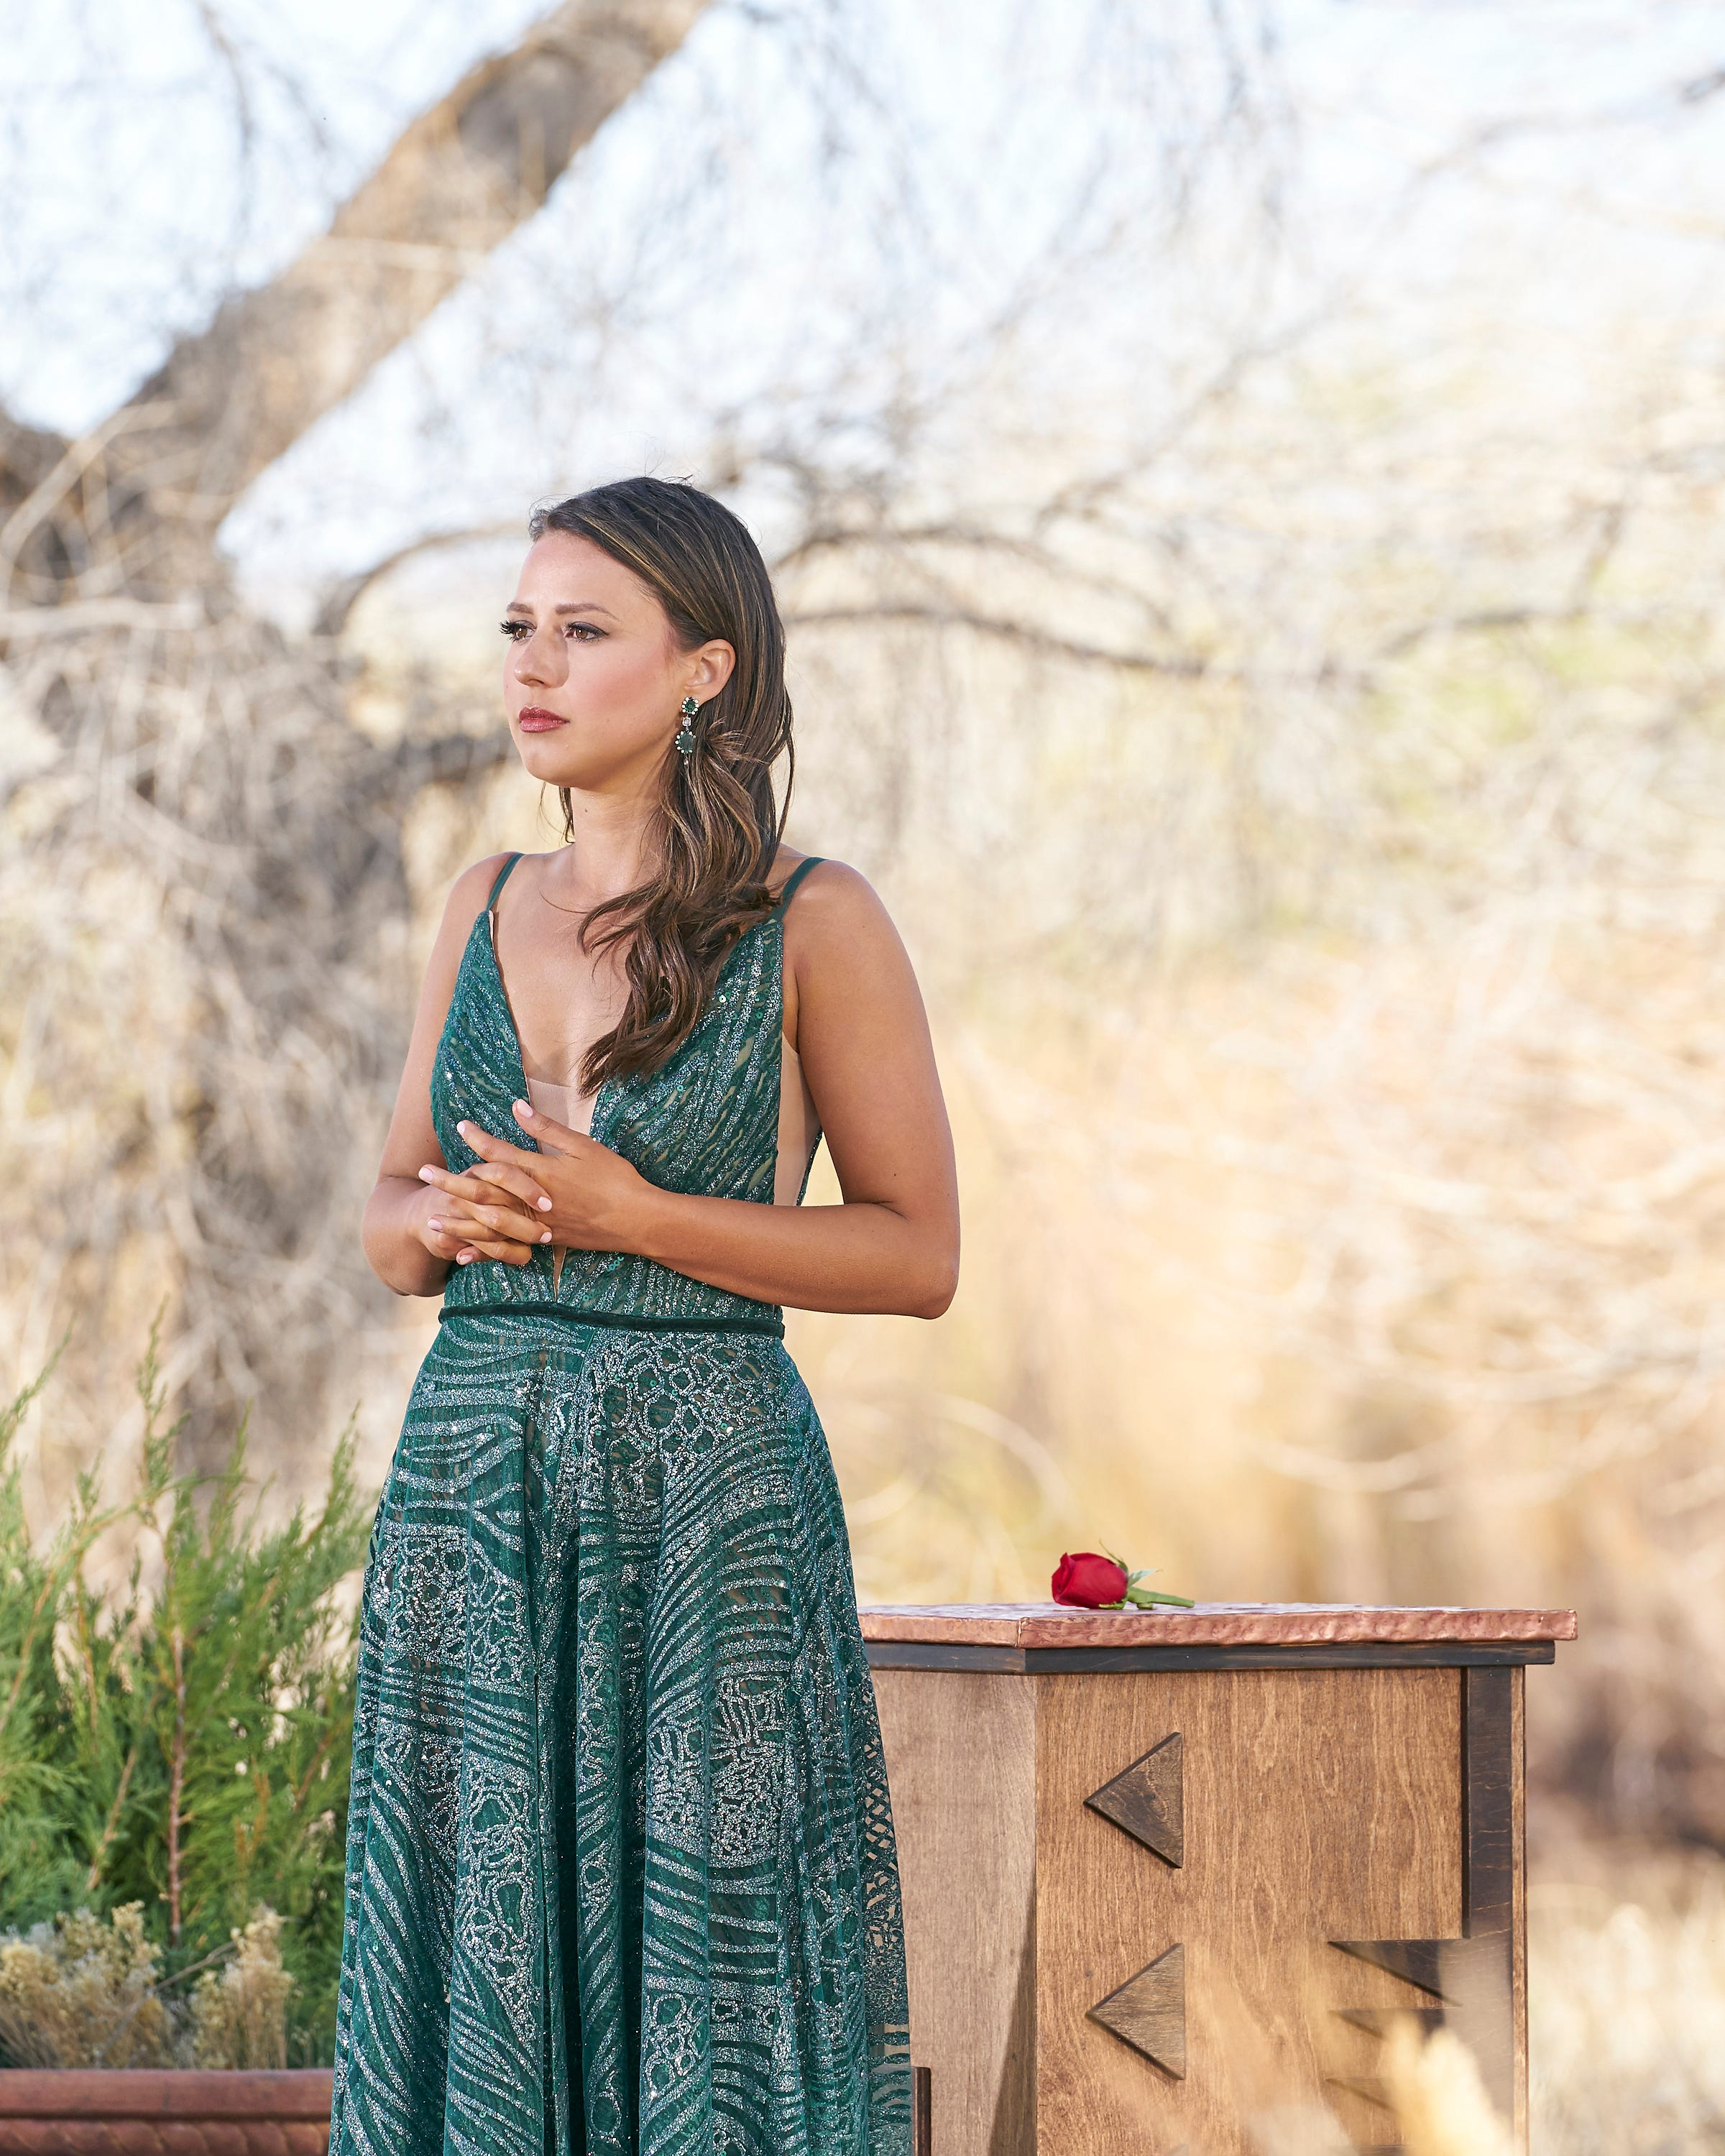 The Bachelorette  finale recap: Katie gets engaged in the aftermath of losing two frontrunners